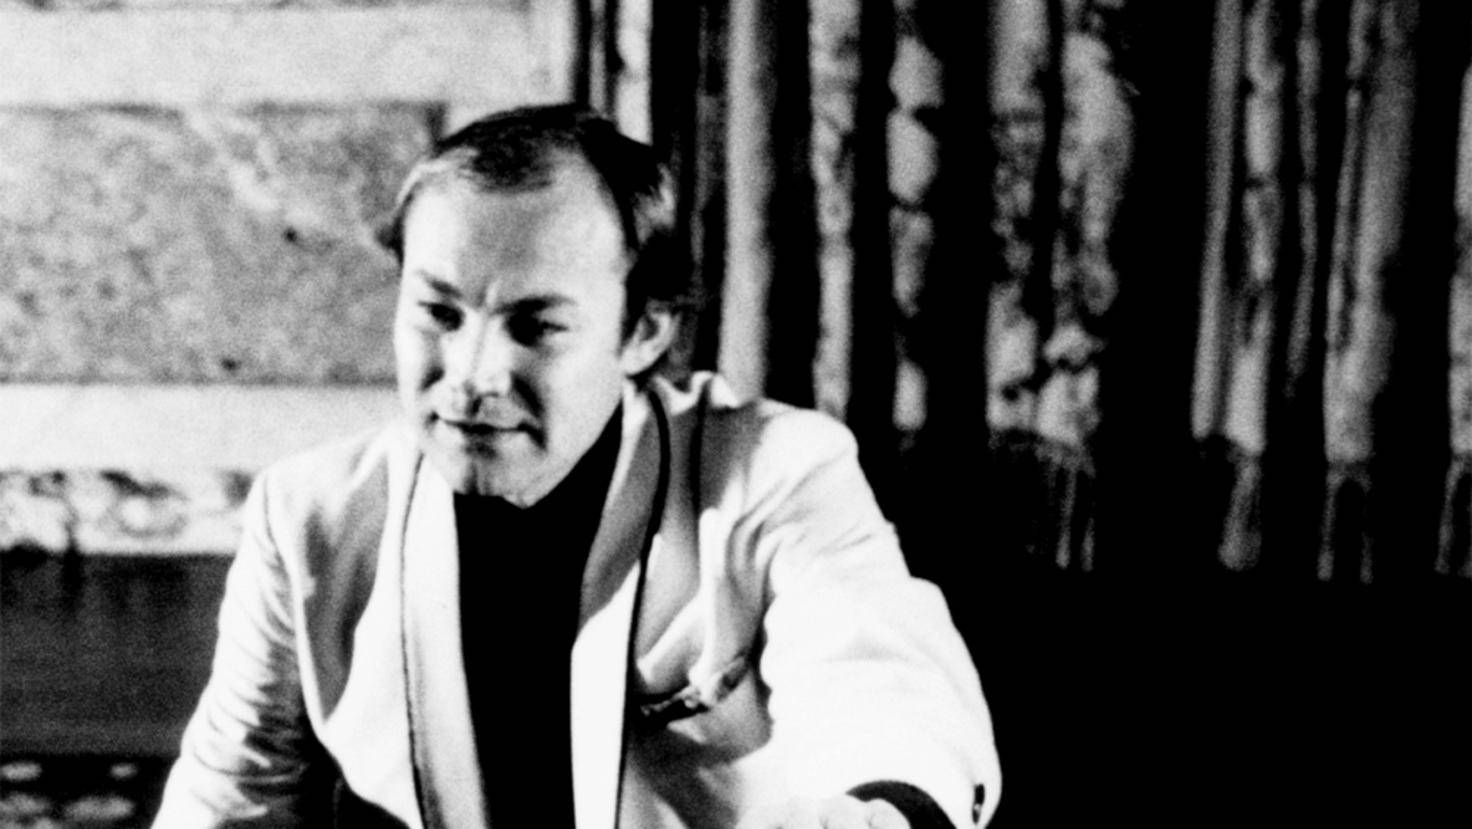 James bond Sag niemals nie Klaus Maria brandauer